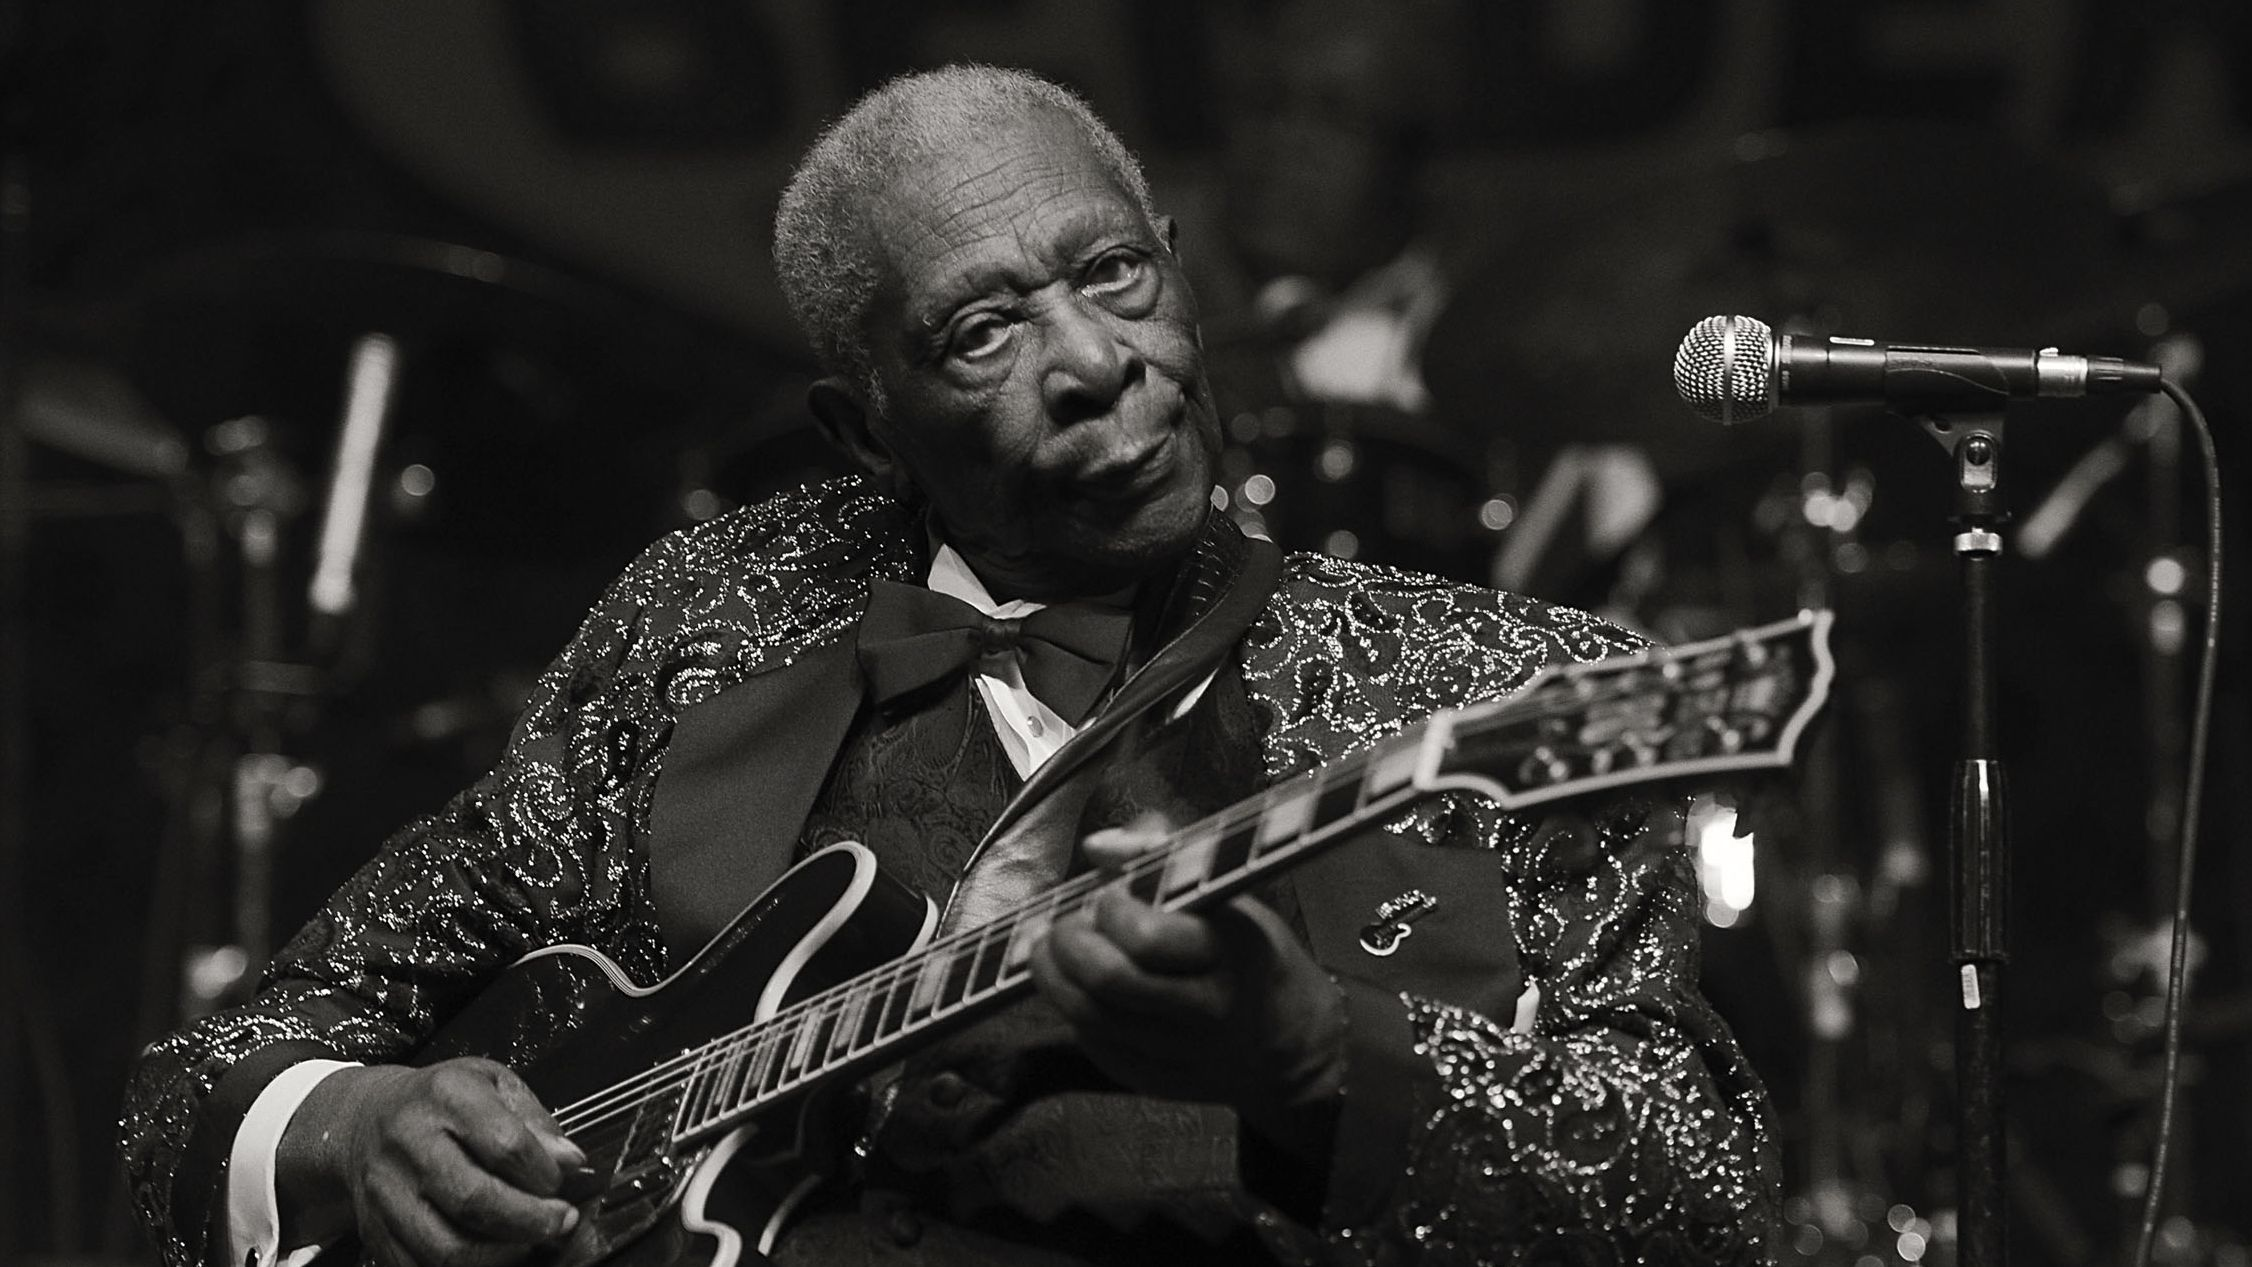 Died BB King 05/15/2015 56